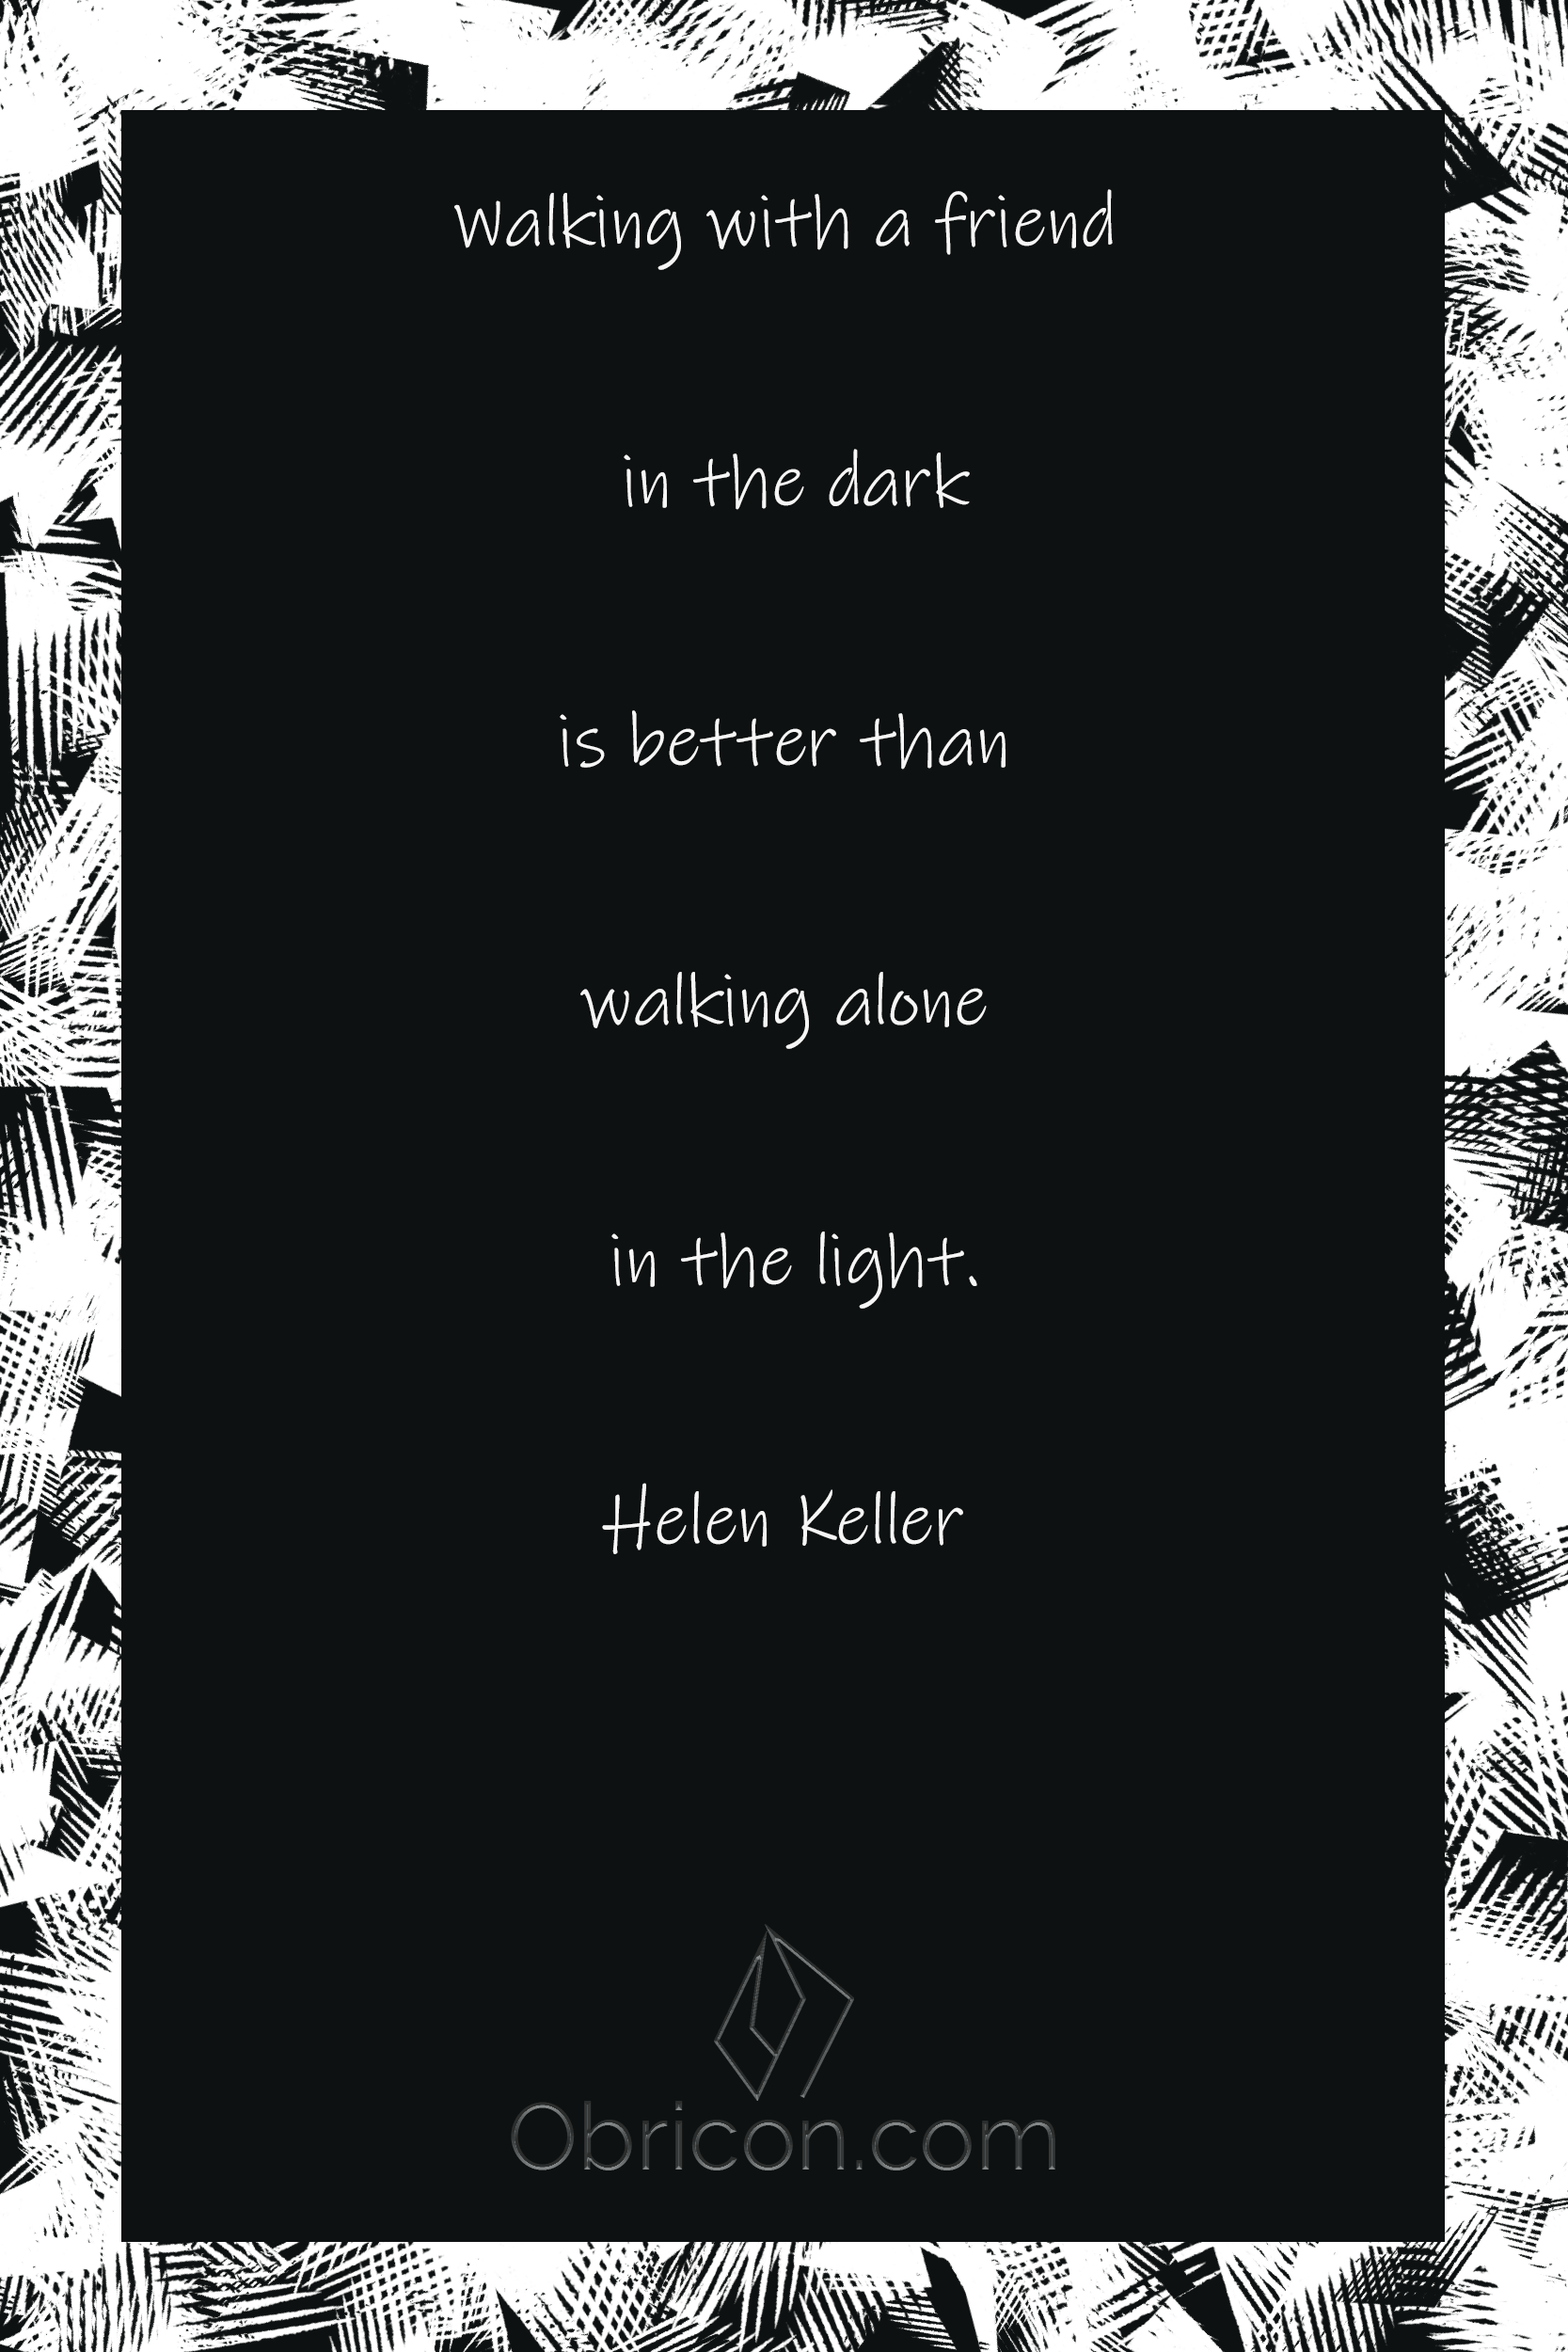 Walking with a friend in the dark is better than walking alone in the light. Helen Keller.png